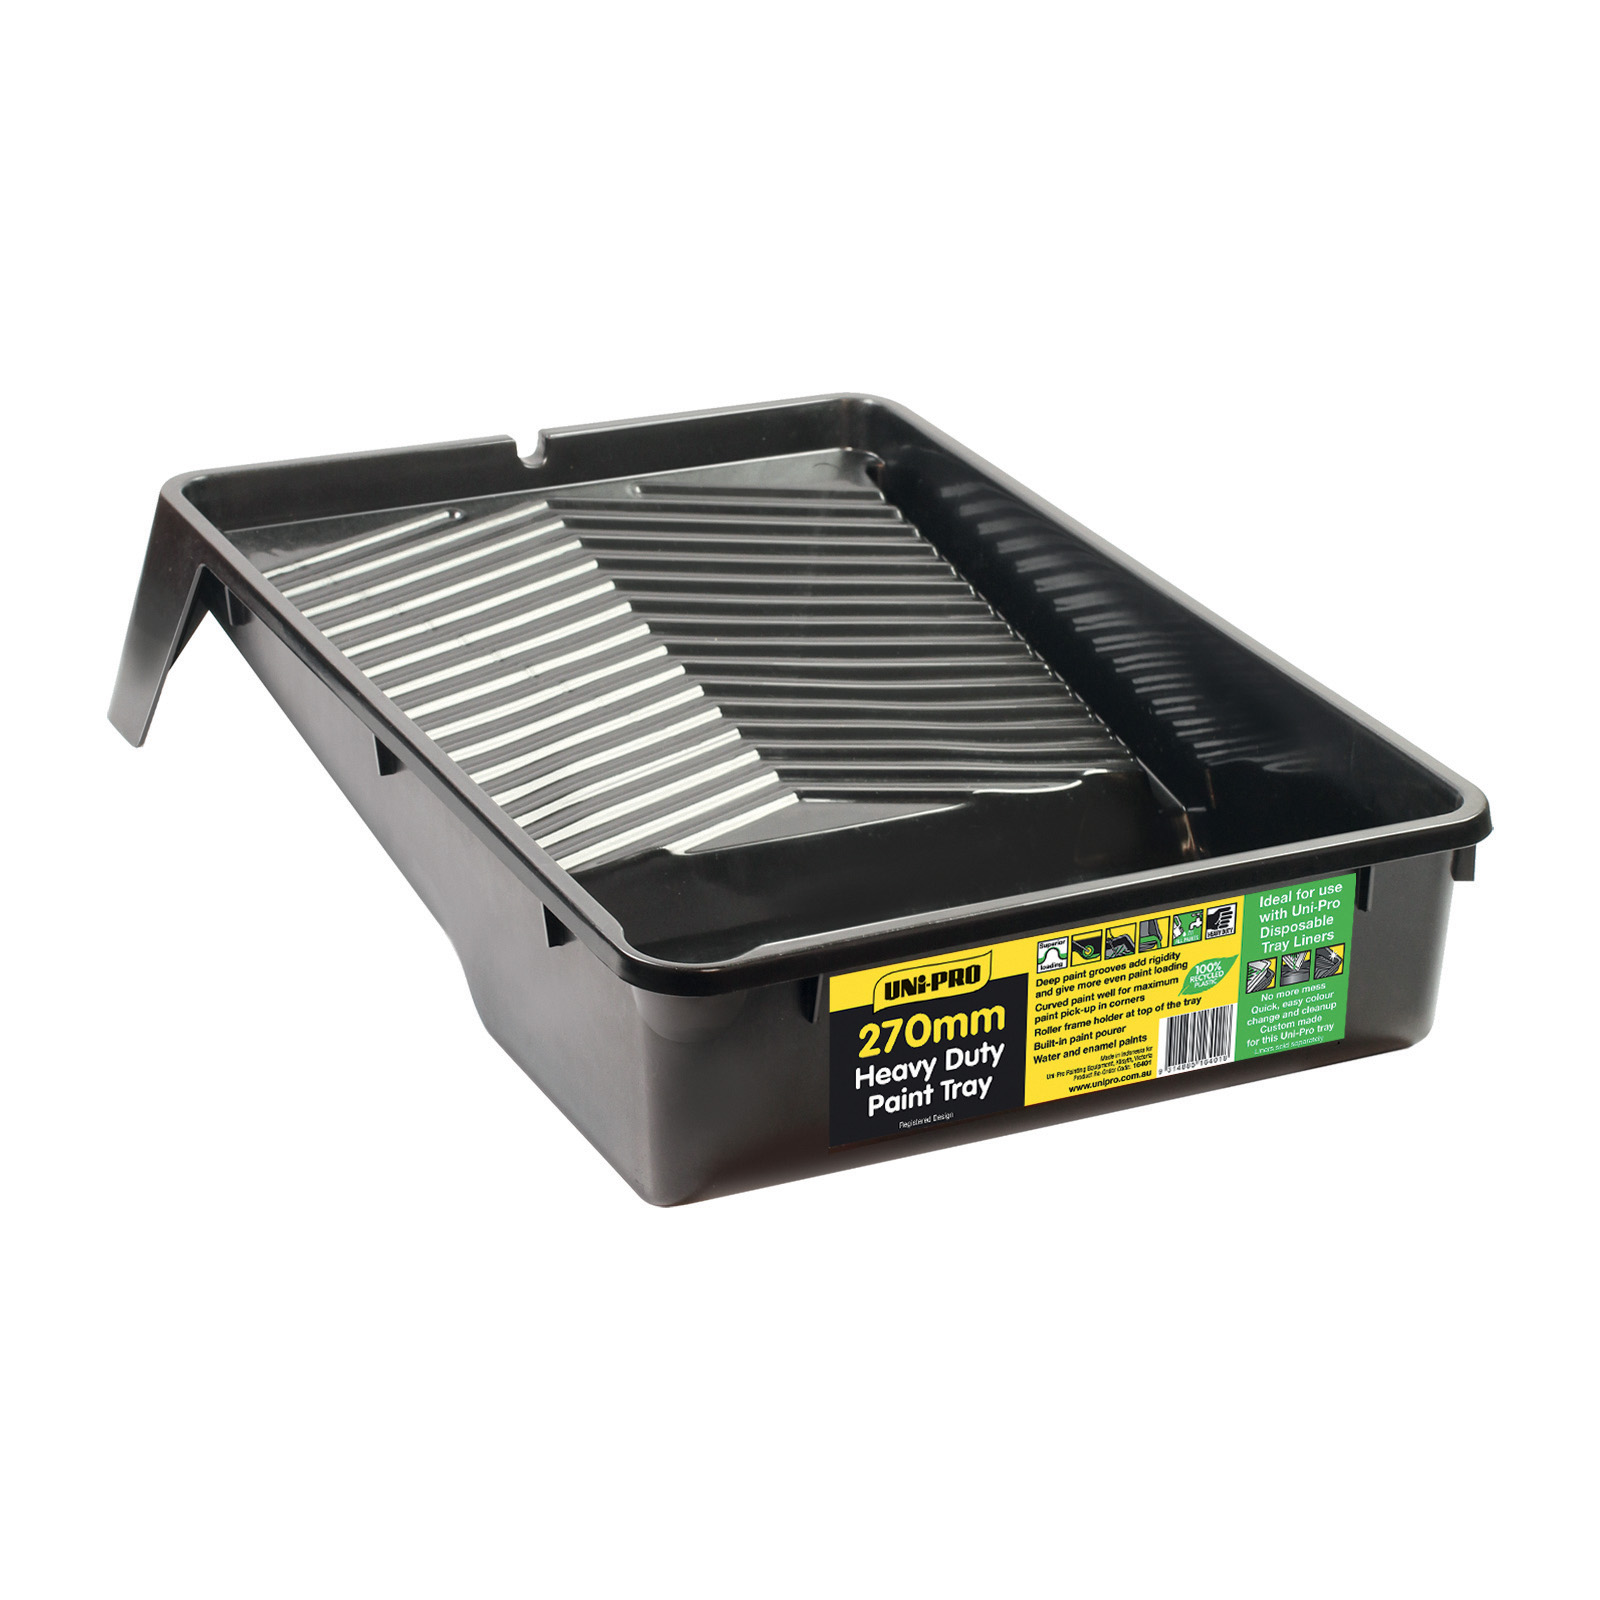 UNi-PRO 270mm Heavy Duty Plastic Tray With Pourer